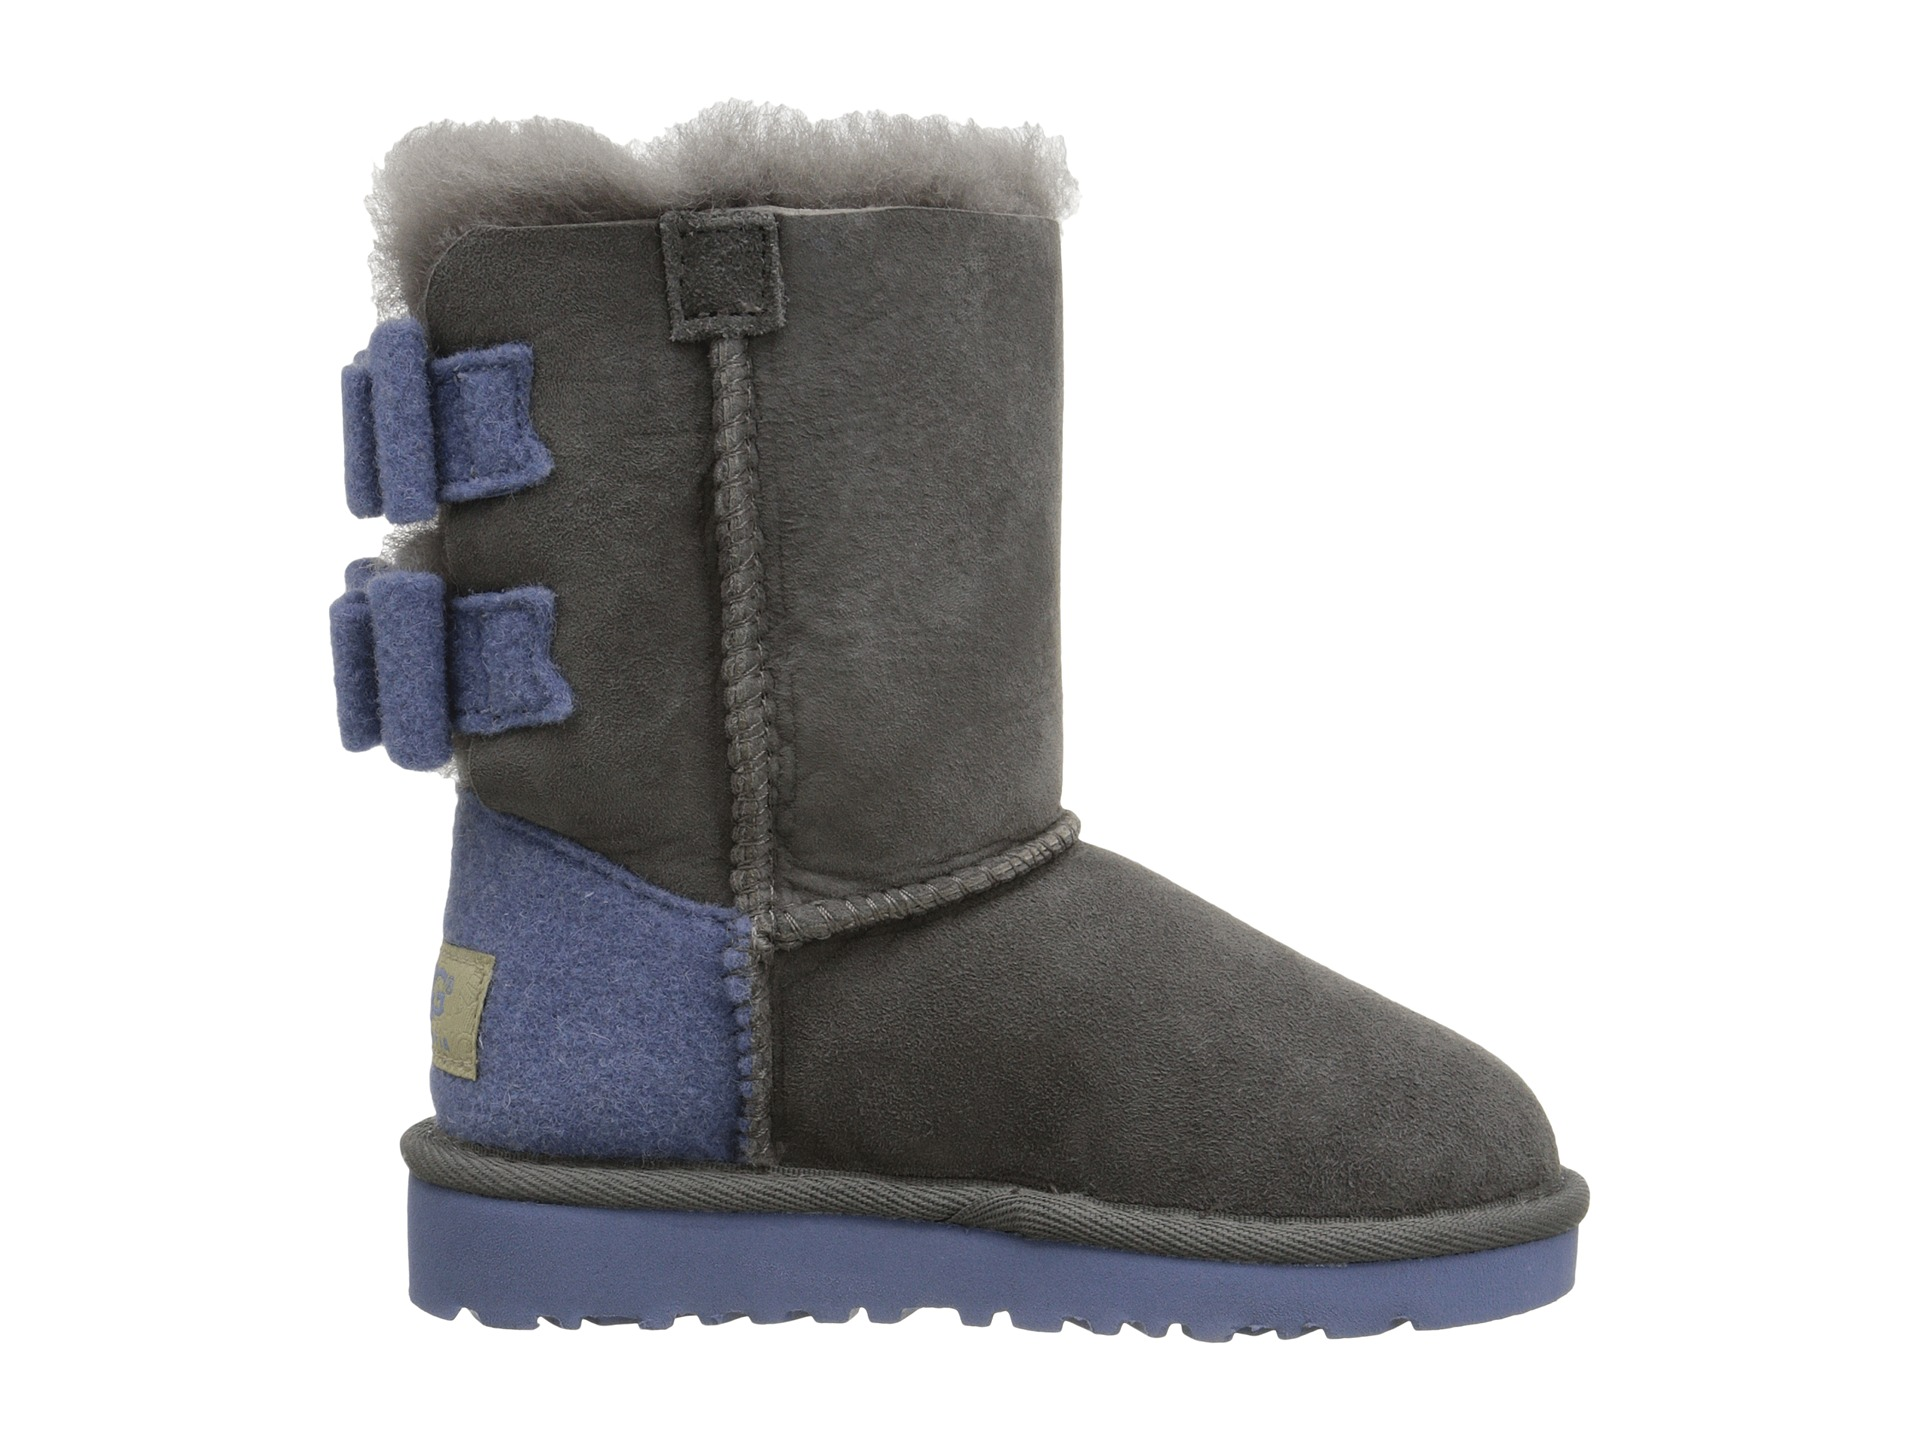 toddler ugg boots size 4